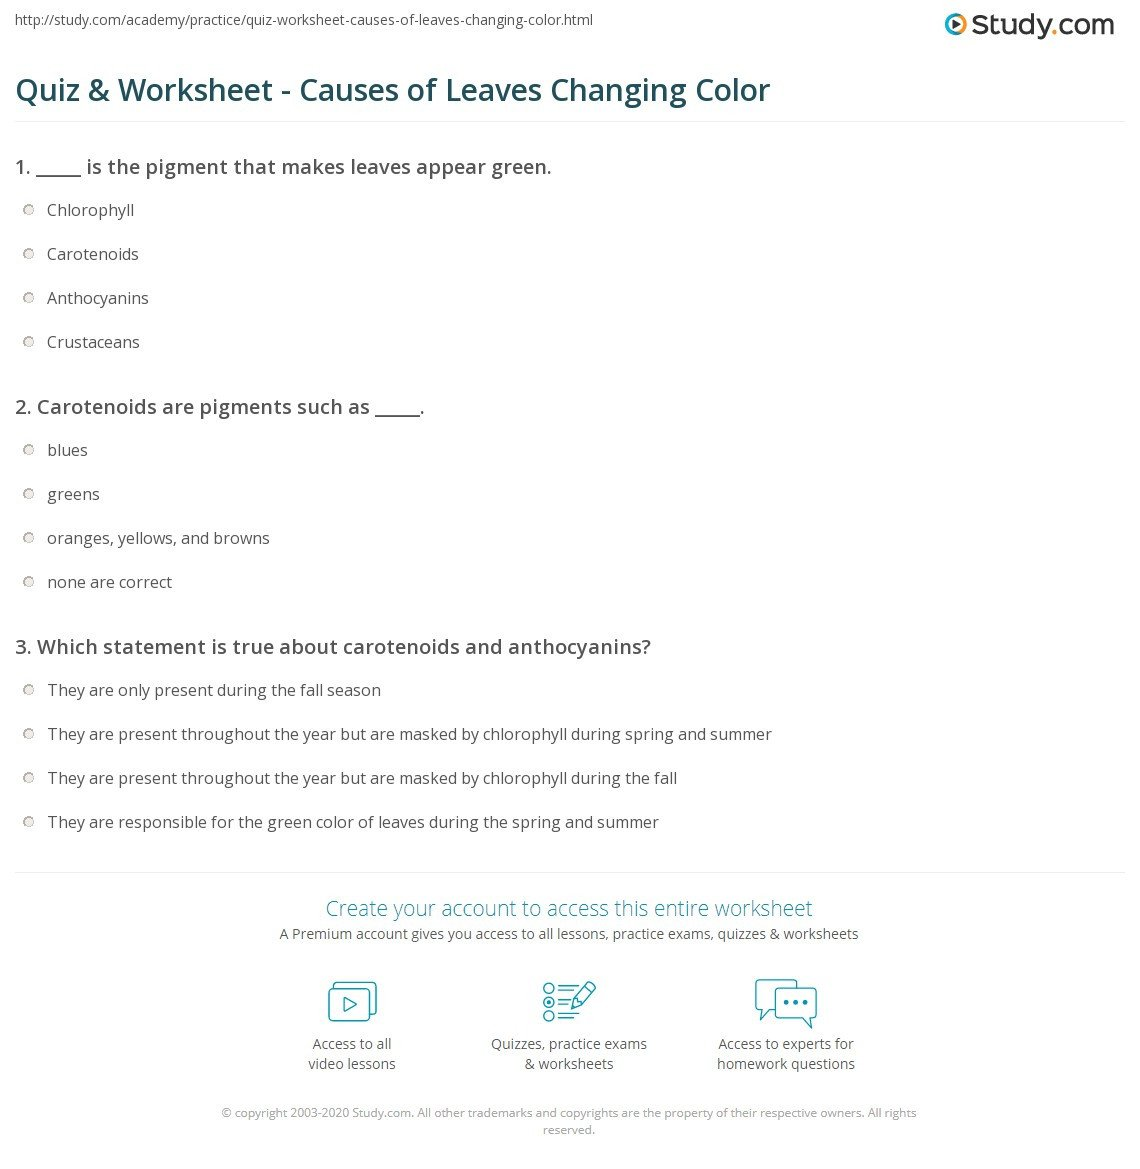 quiz worksheet causes of leaves changing color